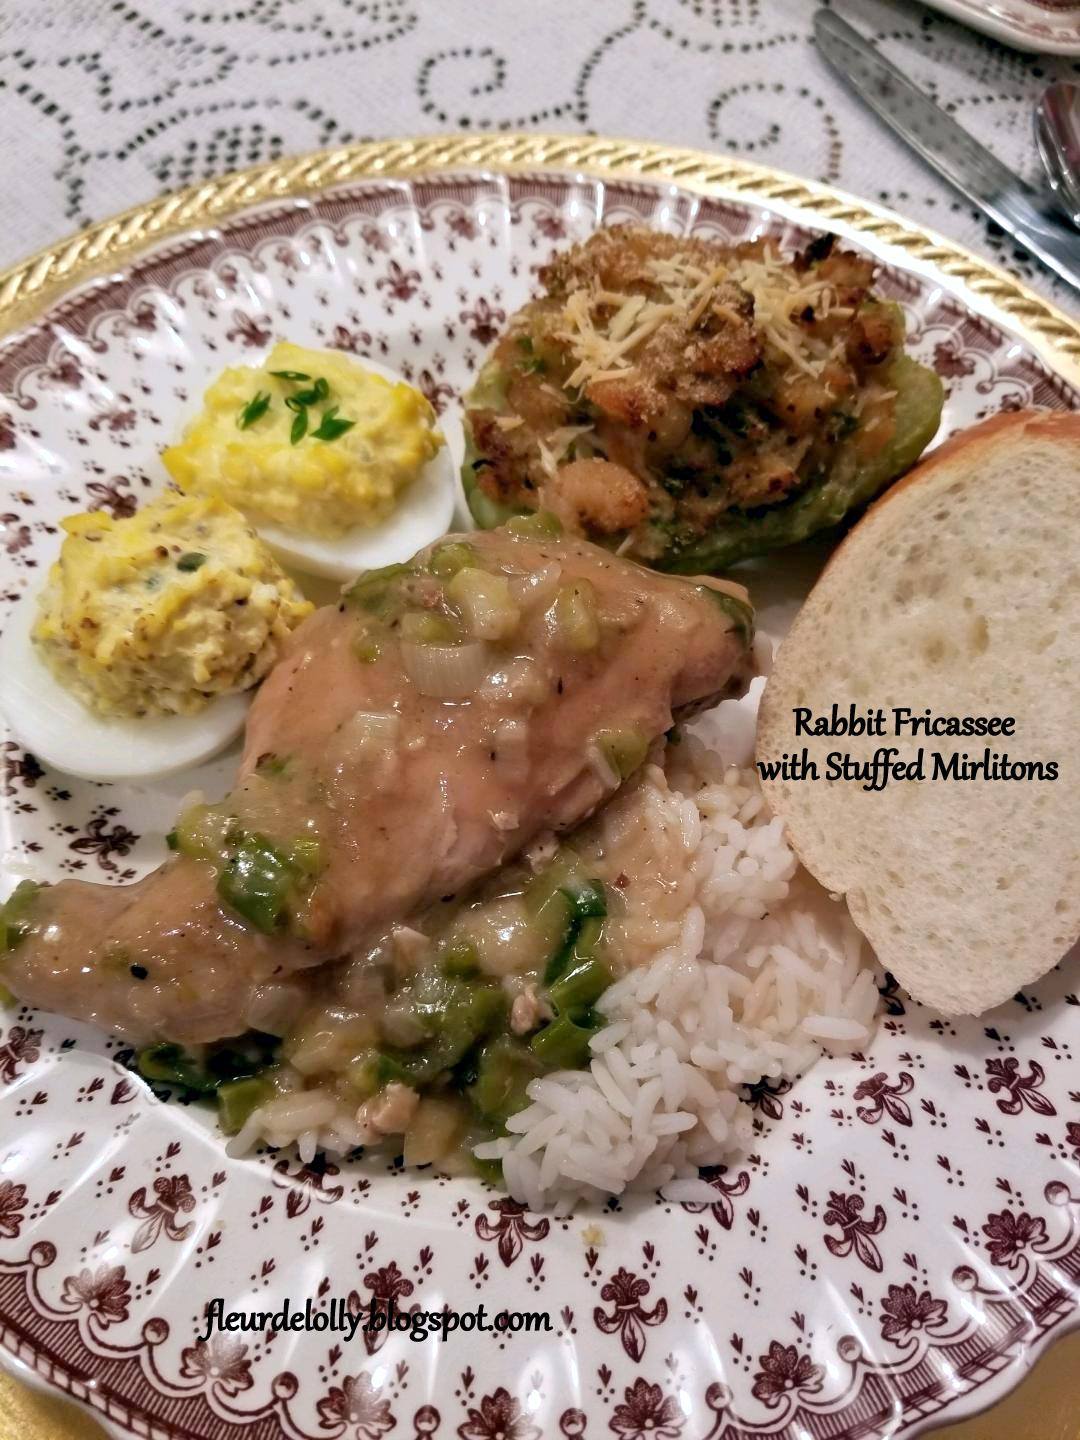 Communication on this topic: How to Make Rabbit Fricassee, how-to-make-rabbit-fricassee/